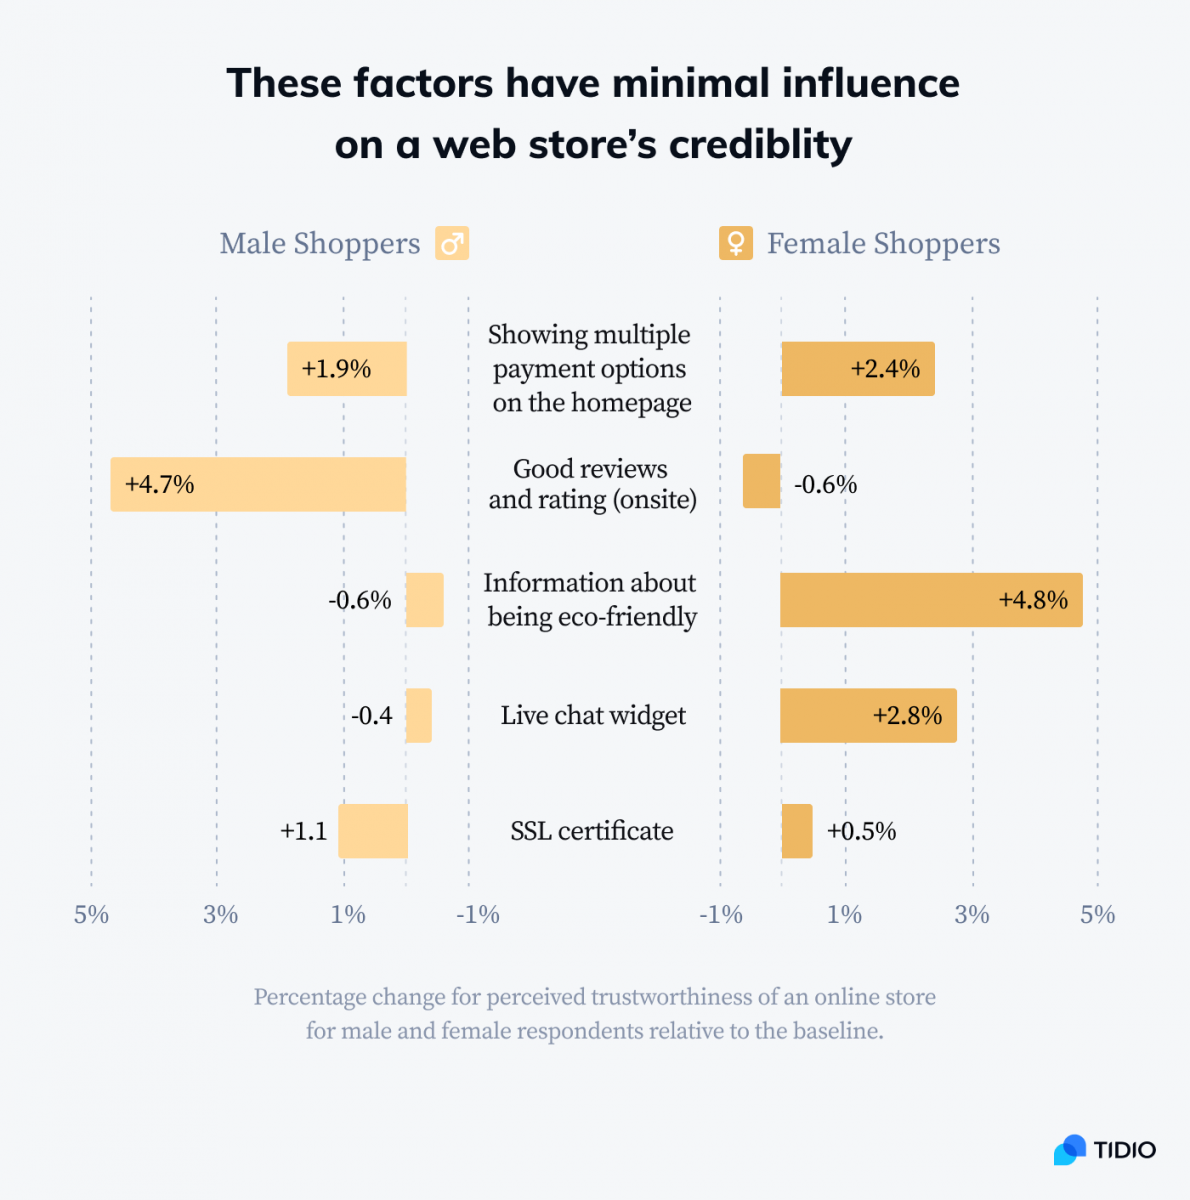 The factors that have minimal influence on a web store's credibility infographic